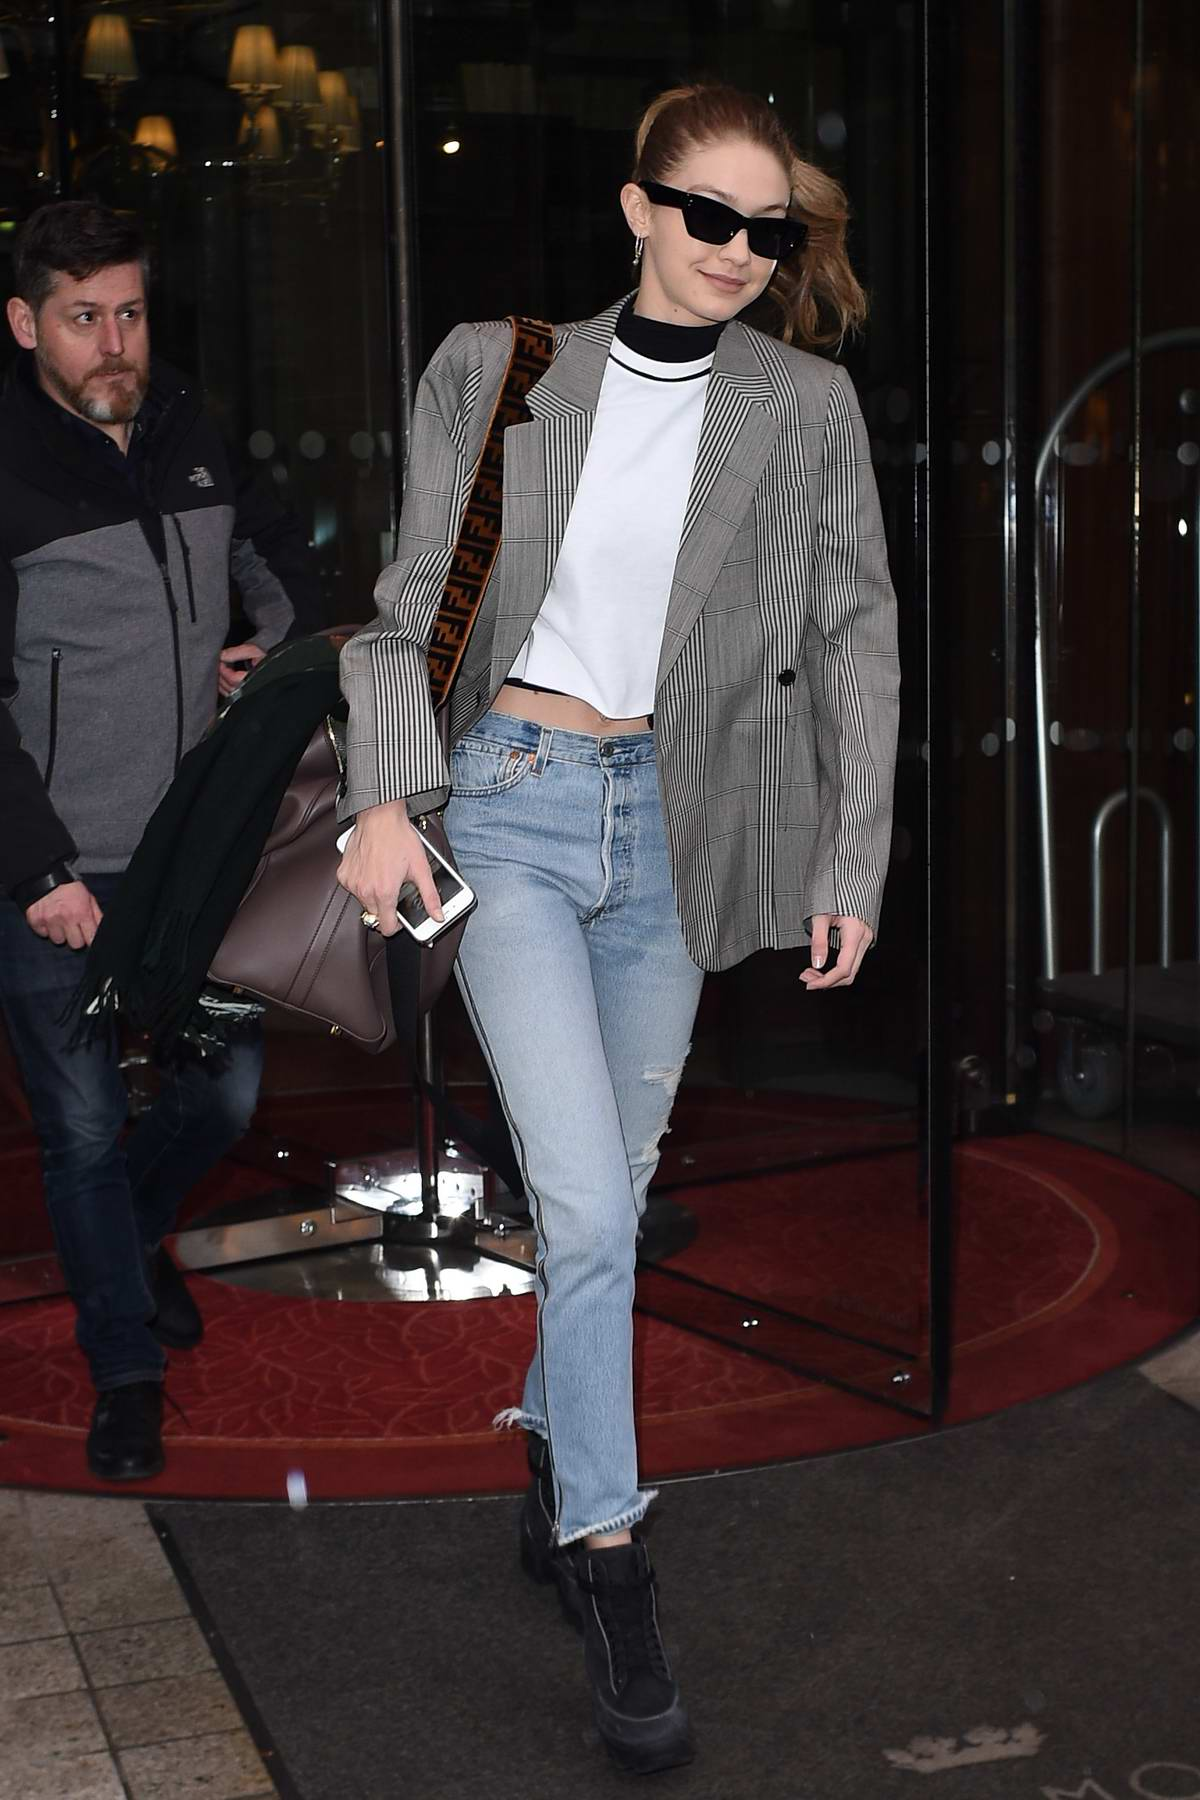 Gigi Hadid leaves The Royal Monceau Hotel in Paris as she flies back to New York